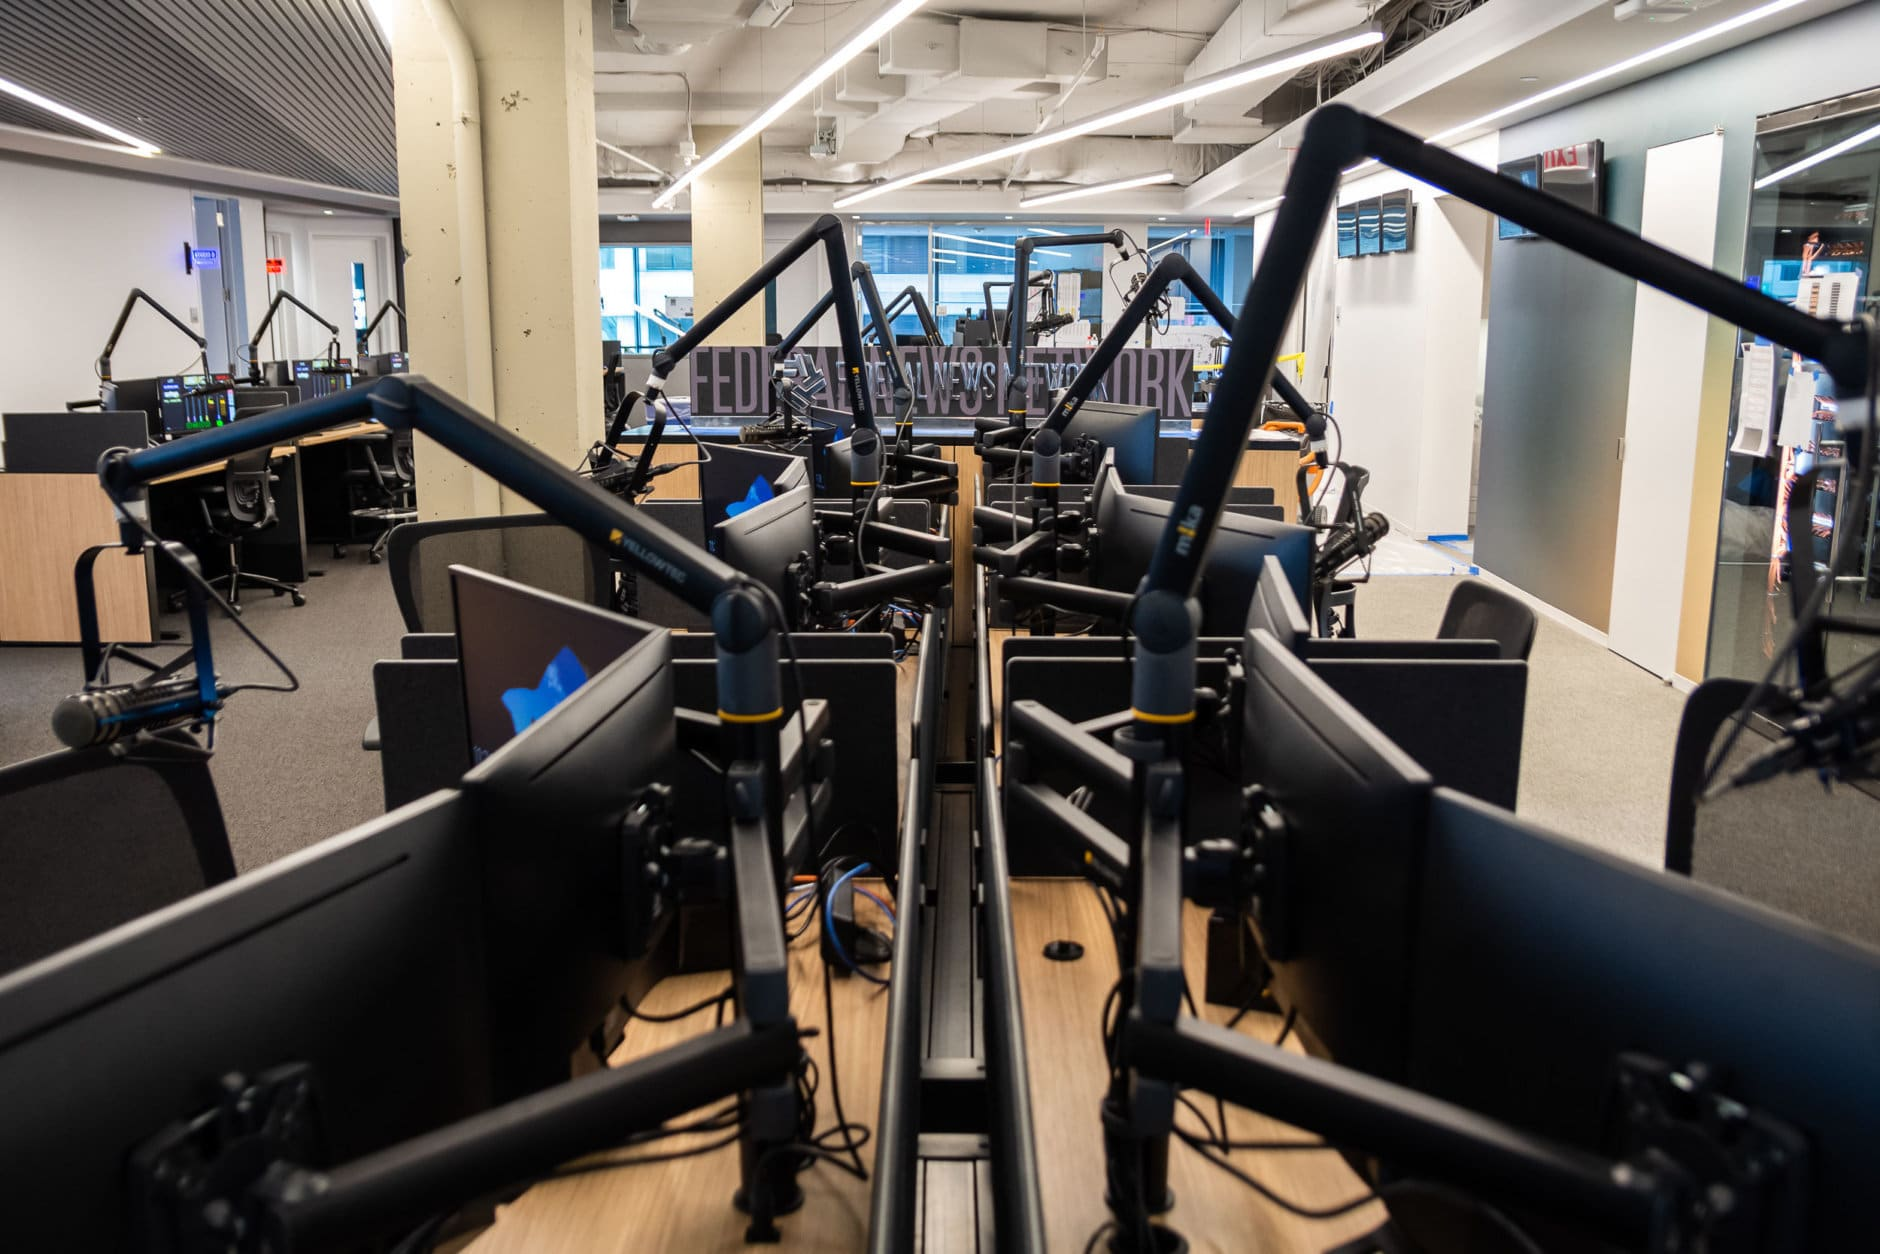 The new office space at 5425 Wisconsin Avenue will be the first time that WTOP and its sister station for federal employees, Federal News Network (FNN), will be produced from the same floor. FNN's new nameplate is visible here, behind a forest of retractable microphone arms. (WTOP/Alejandro Alvarez)